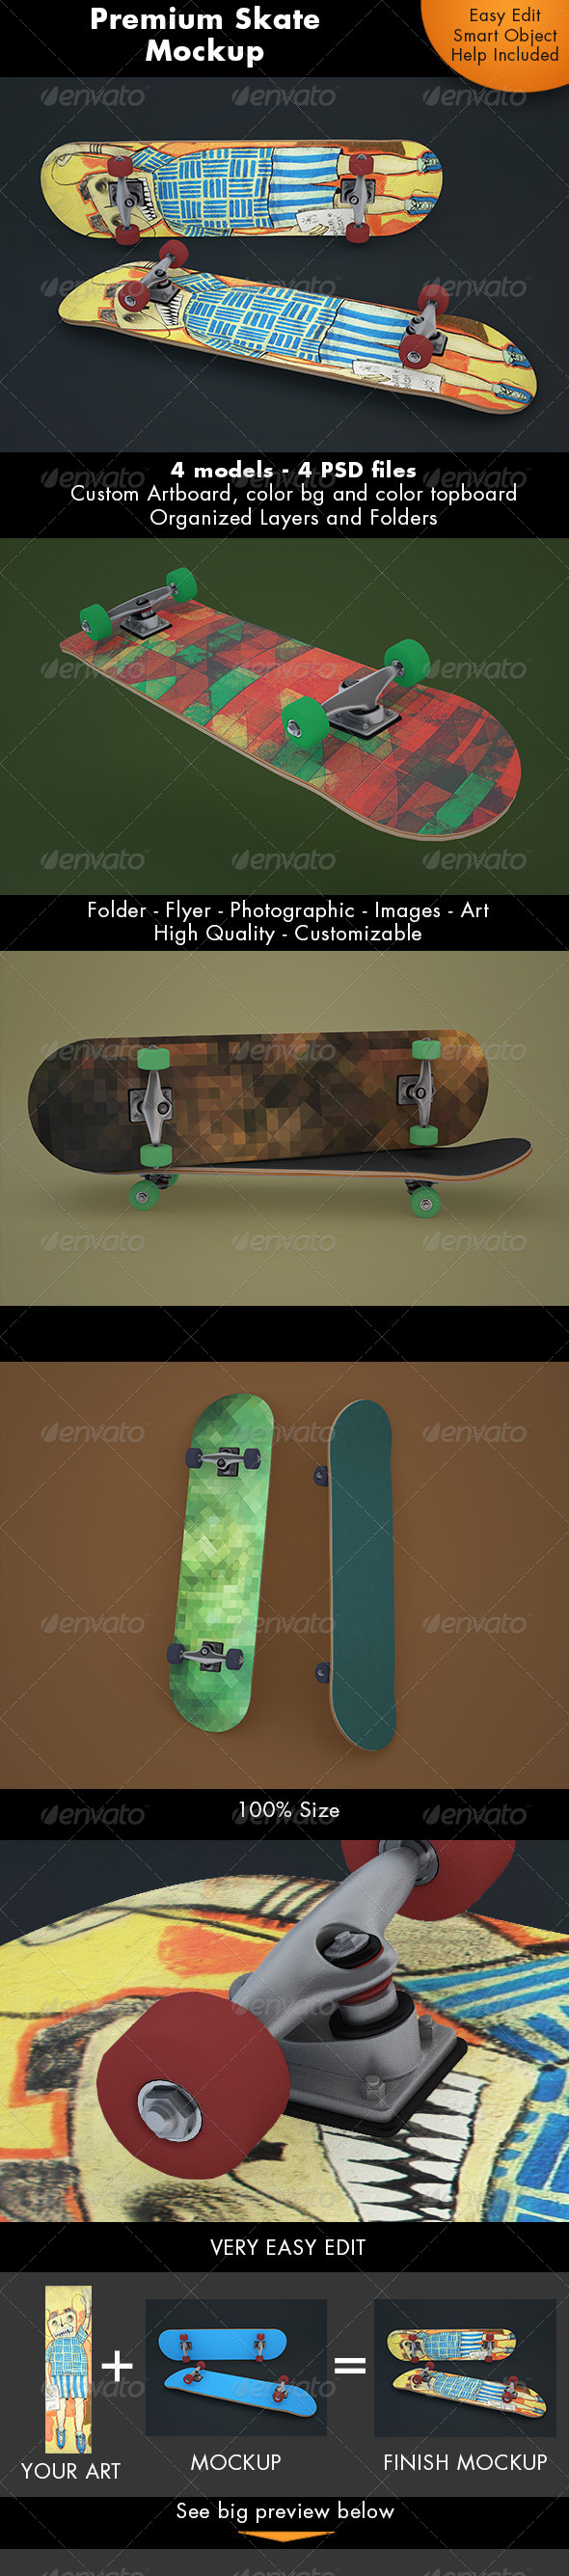 SkateBoard Mockup - Miscellaneous Product Mock-Ups